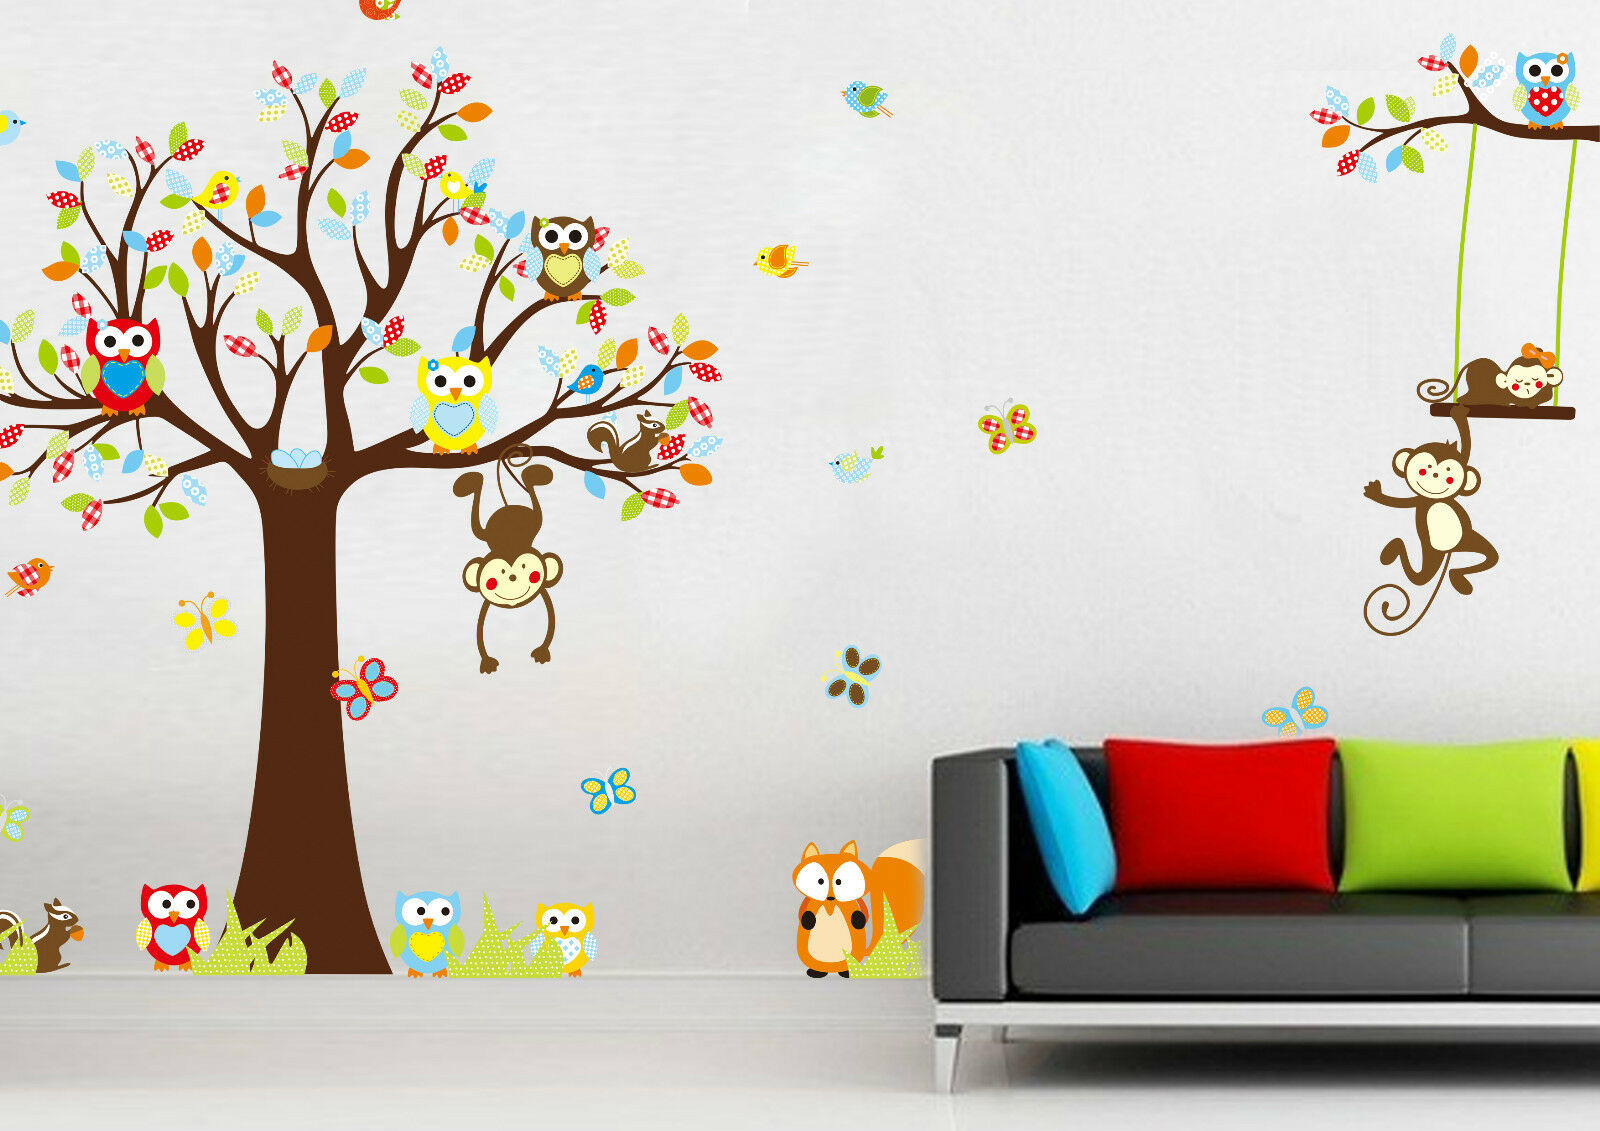 wandtattoo wandsticker kinderzimmer wandaufkleber wanddeko tiere bunt baum baby eur 12 25. Black Bedroom Furniture Sets. Home Design Ideas